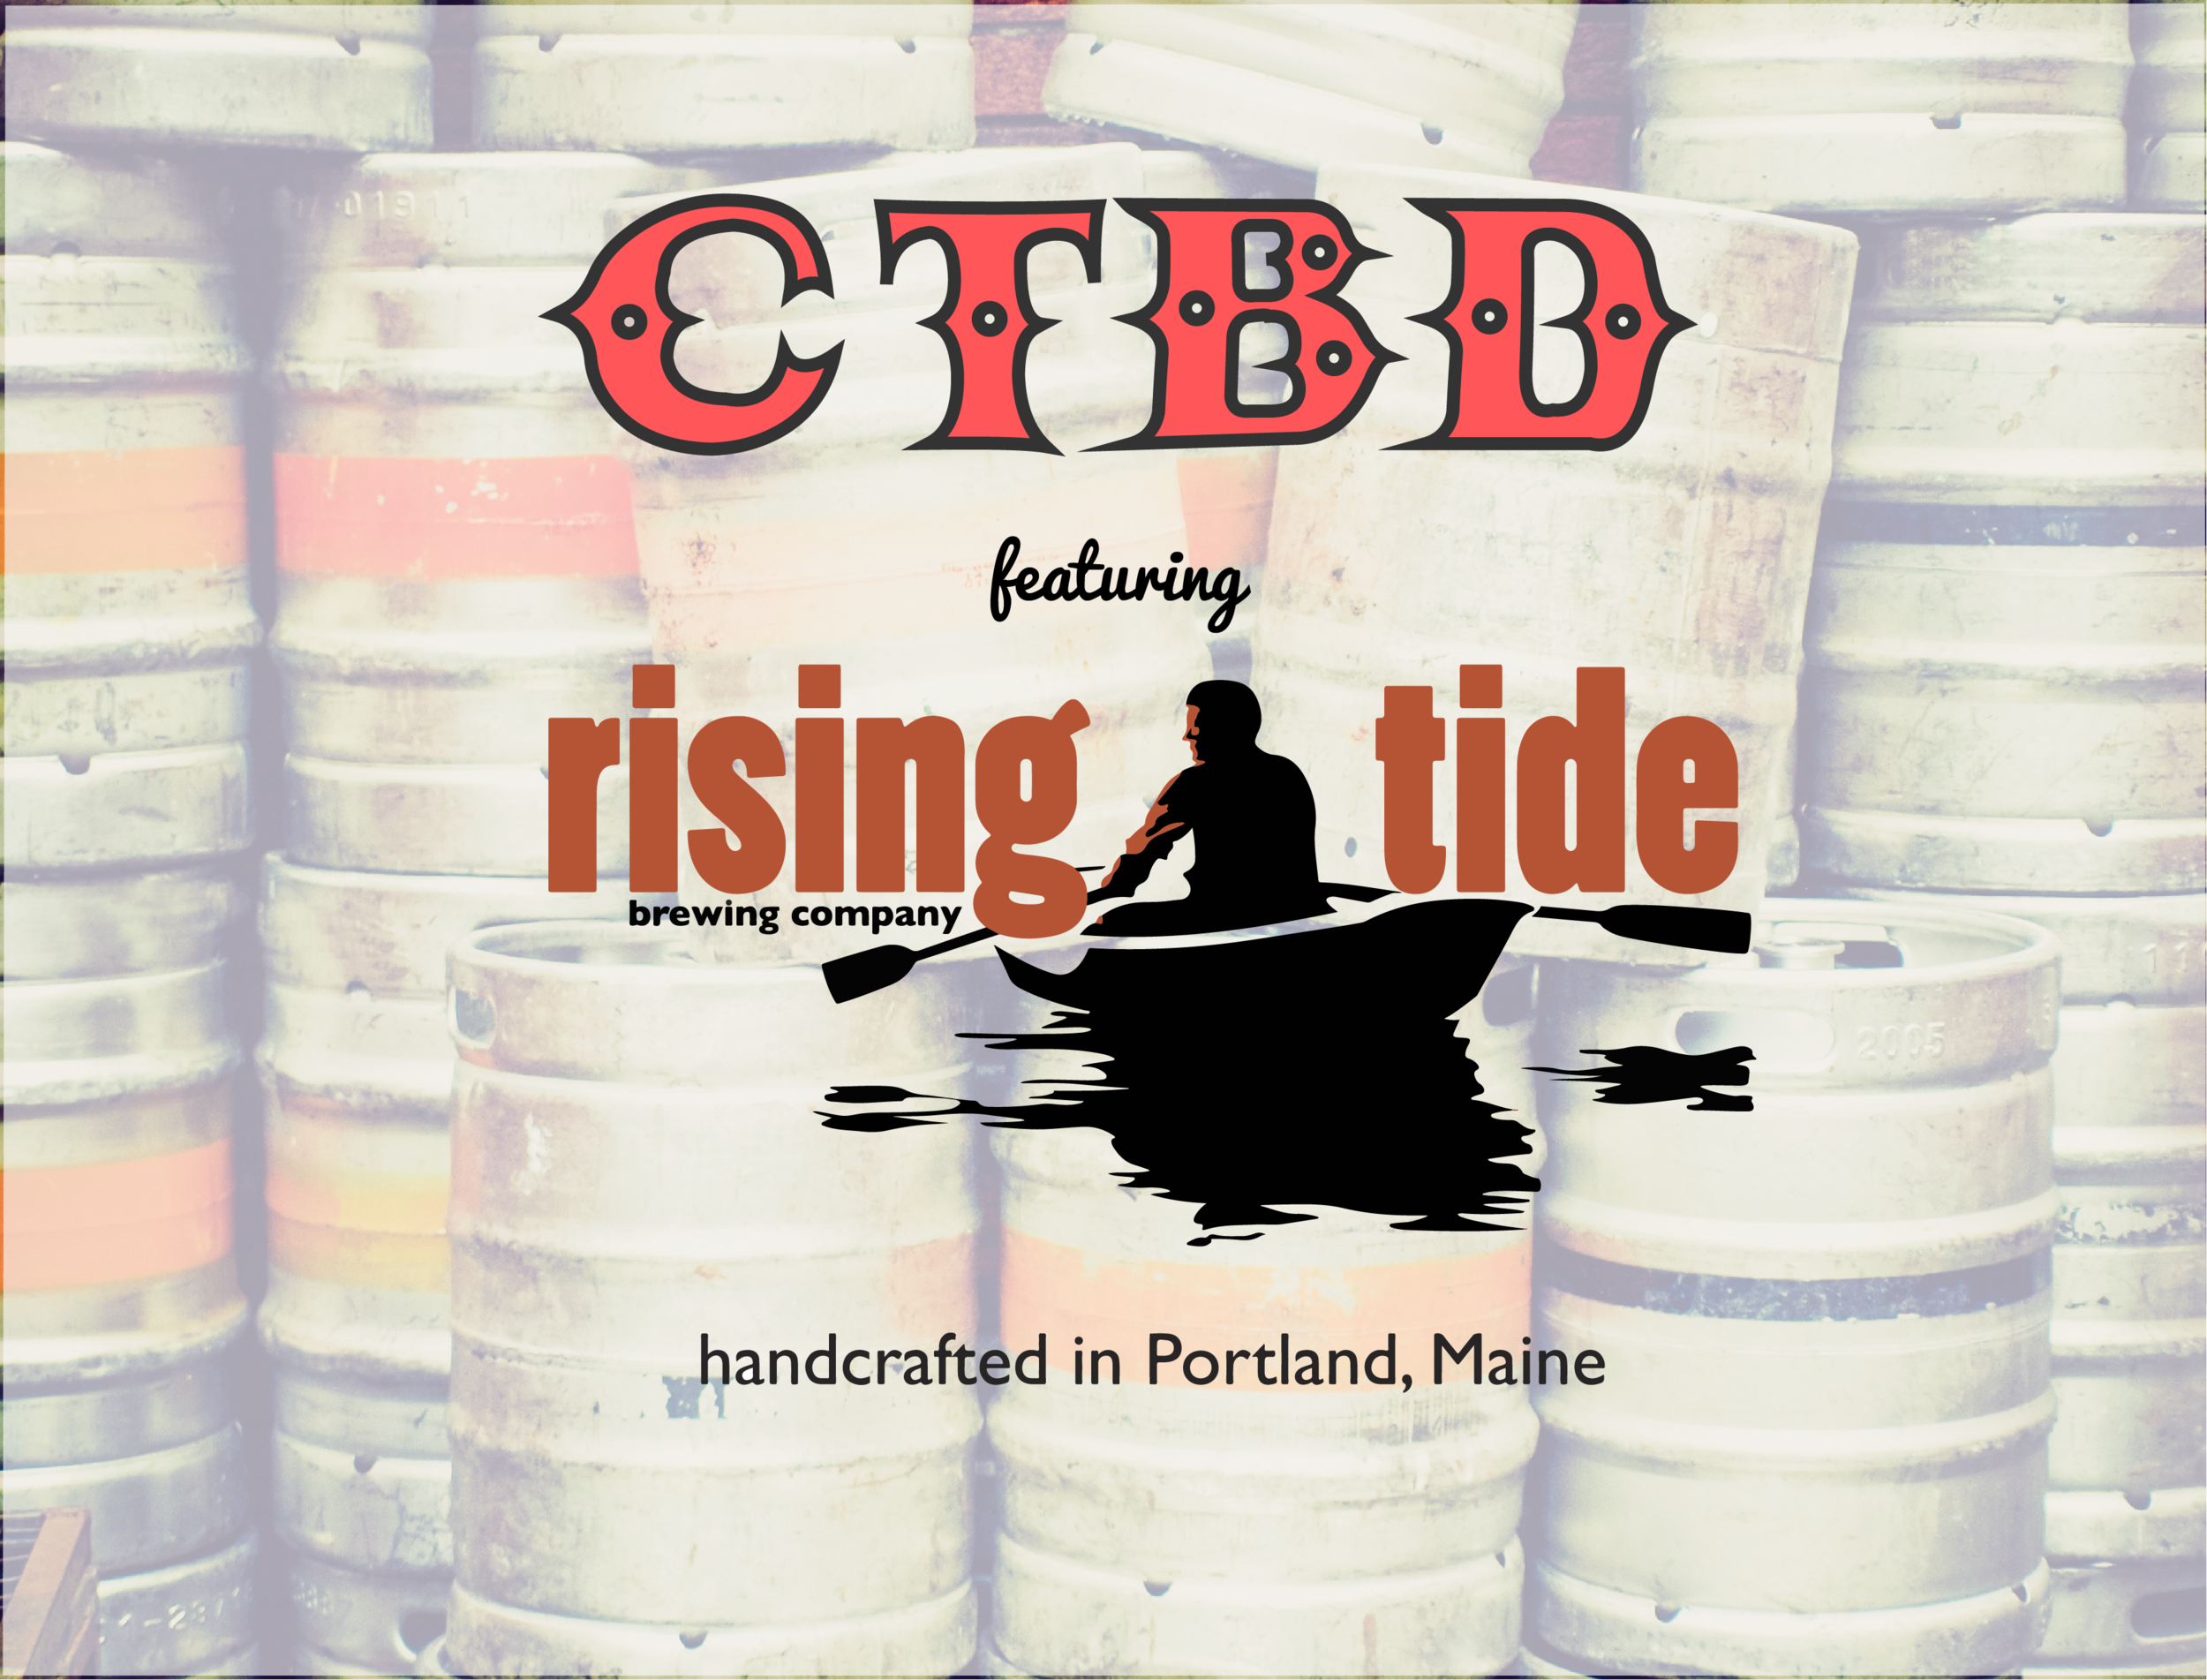 cunard-tavern-beer-dinner-rising-tide-brewing-co